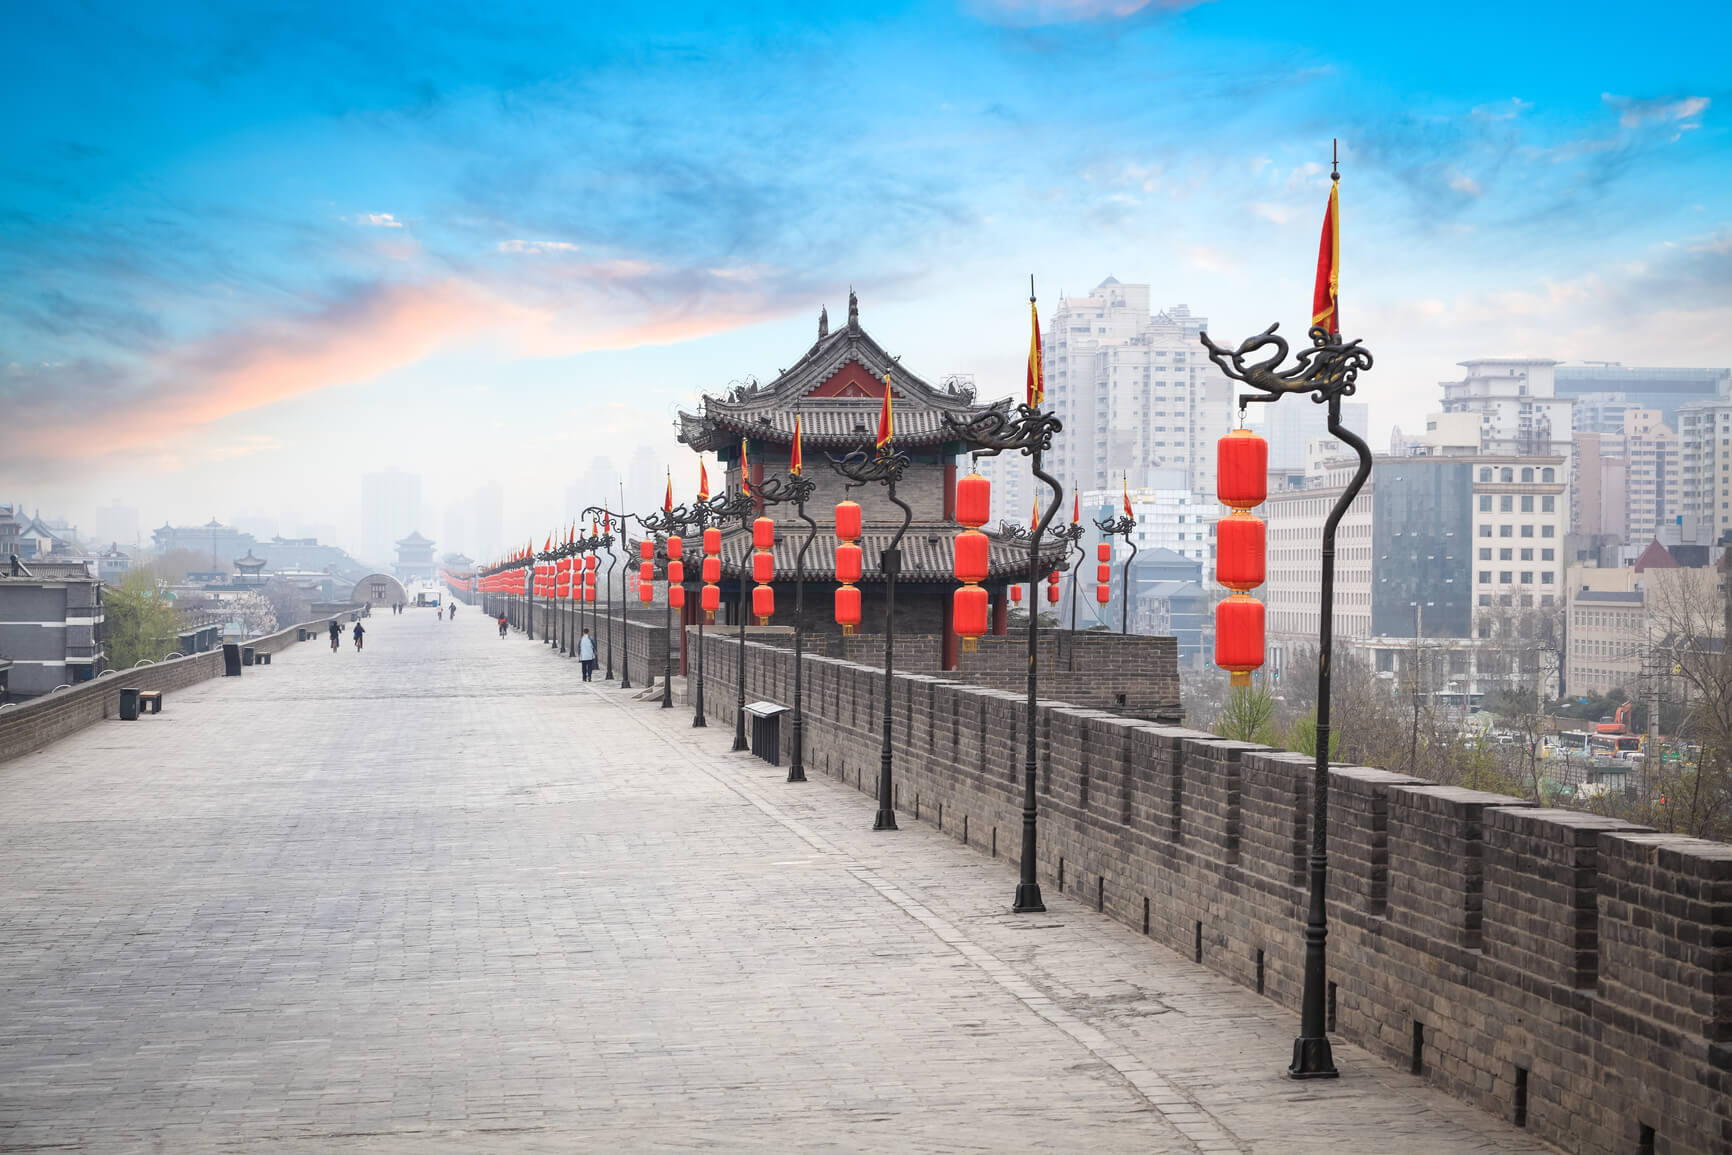 Chicago to Xi'an, China for only $504 roundtrip